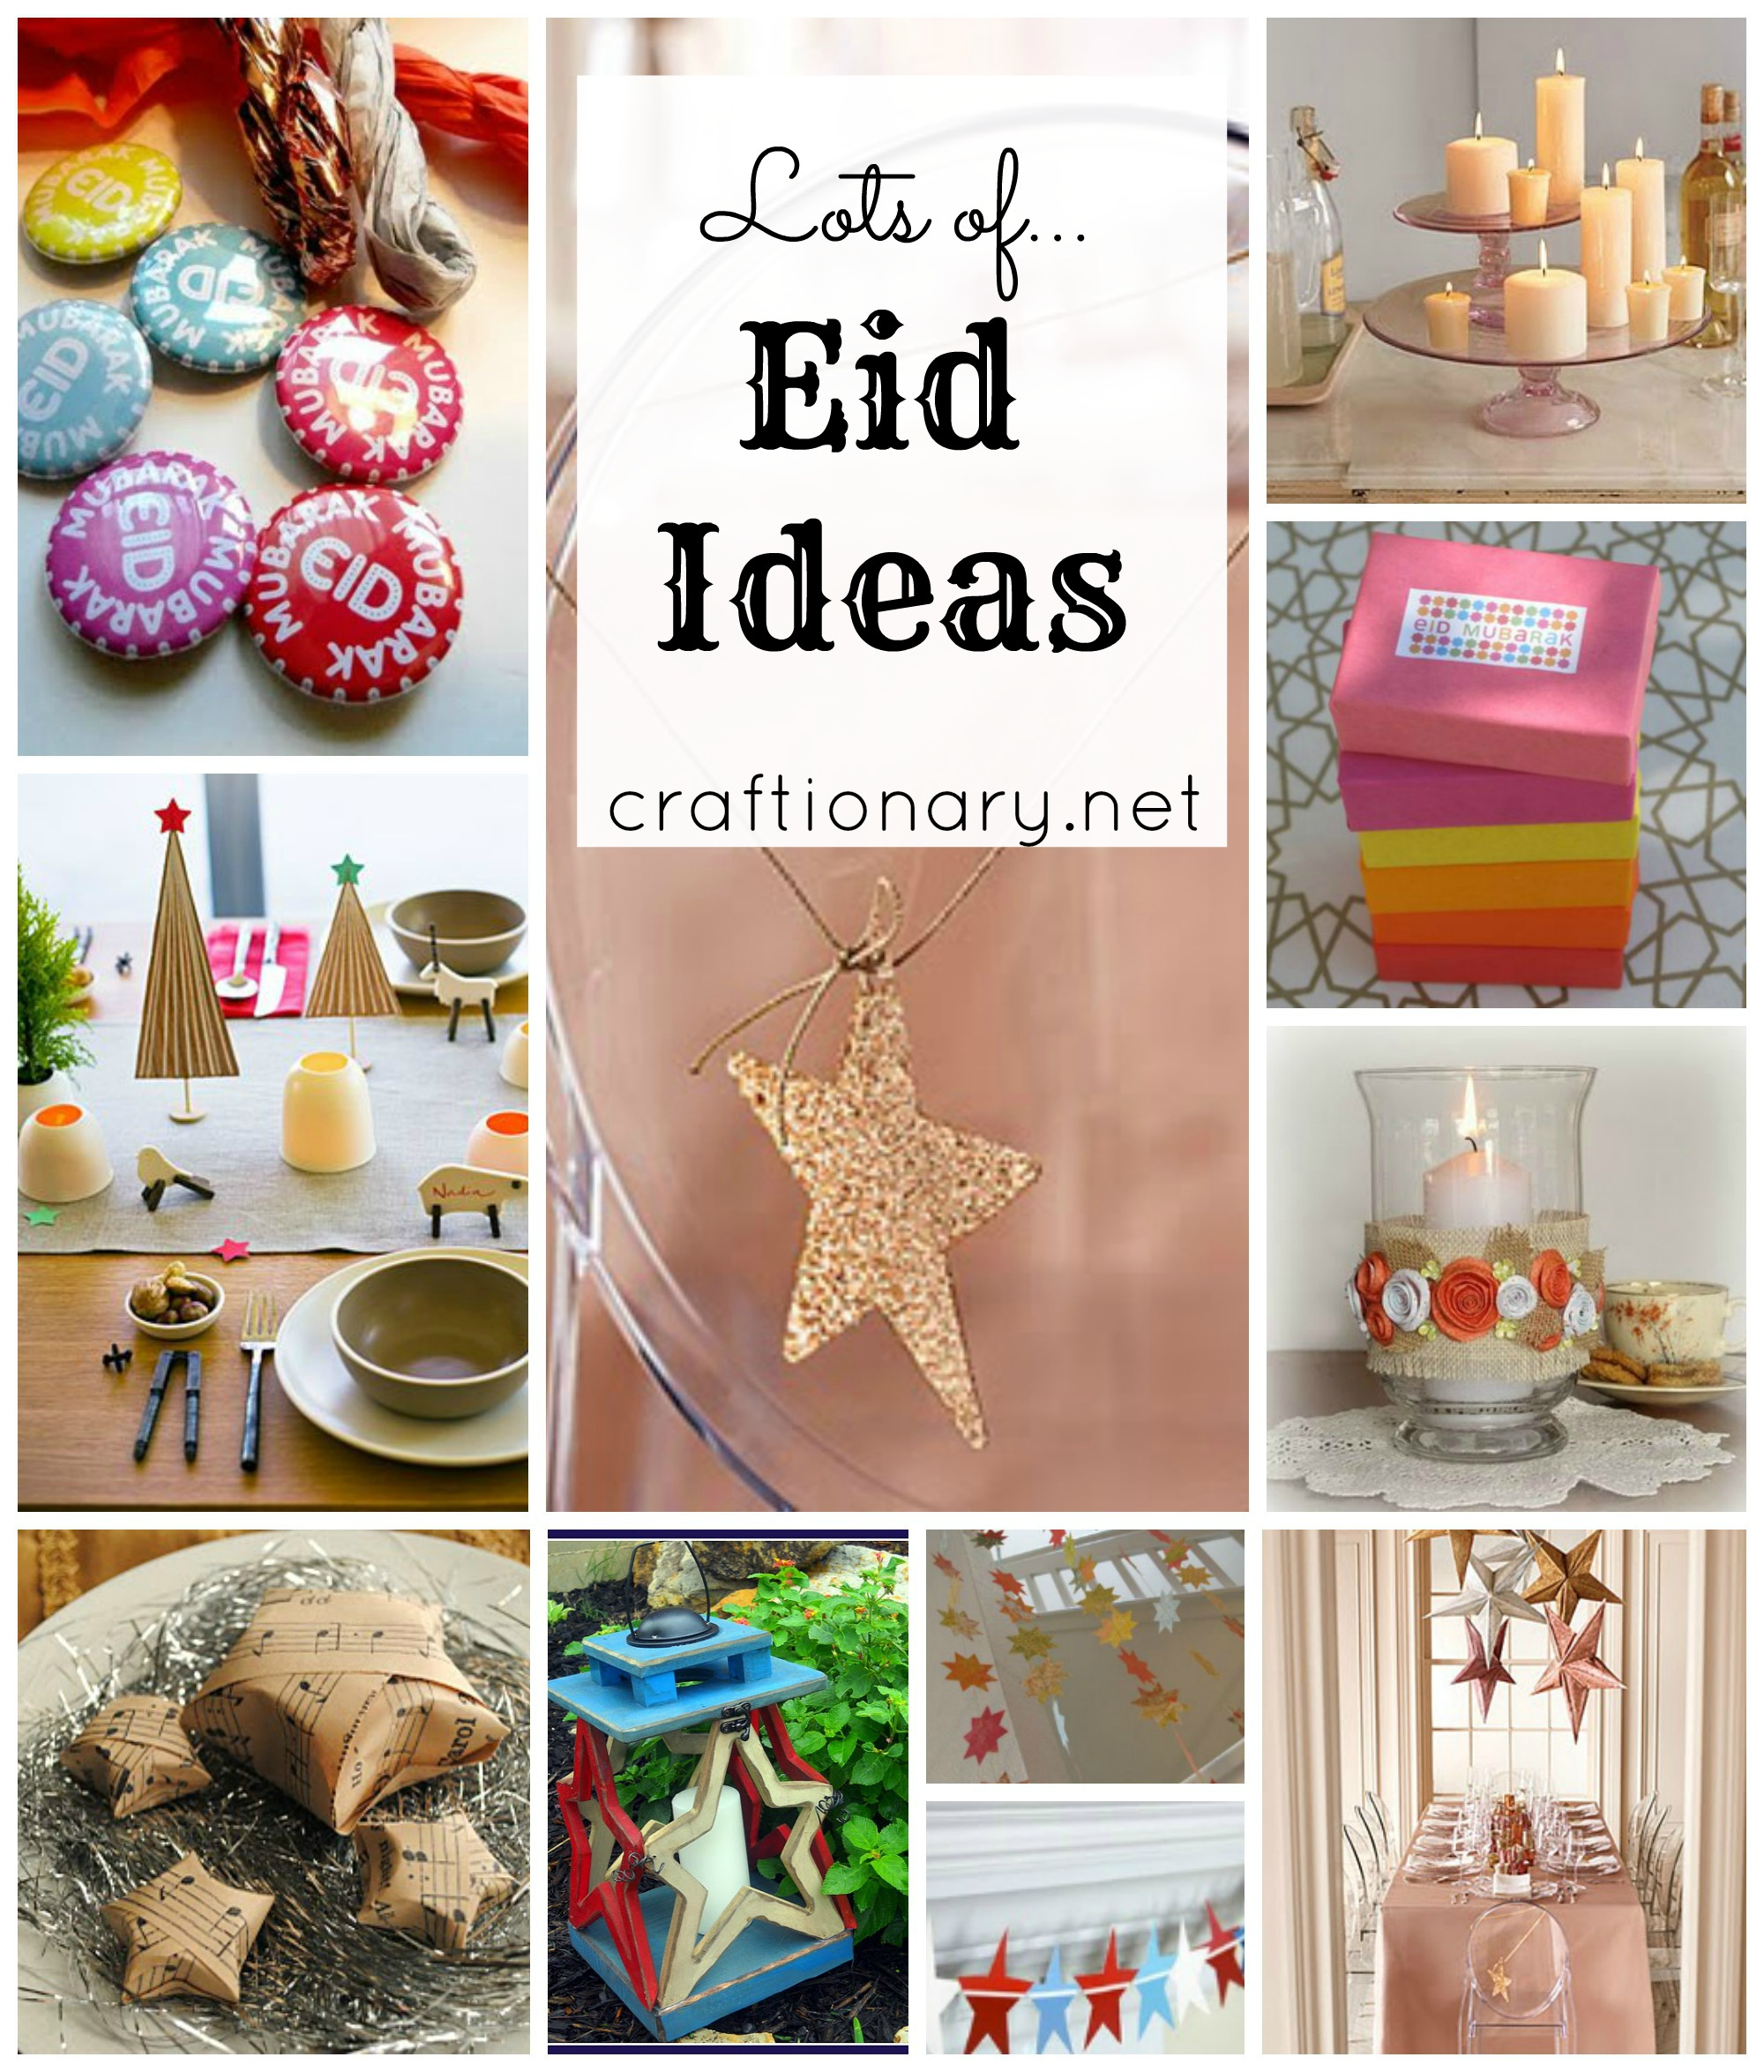 Second Home Decorating Ideas: Craftionary